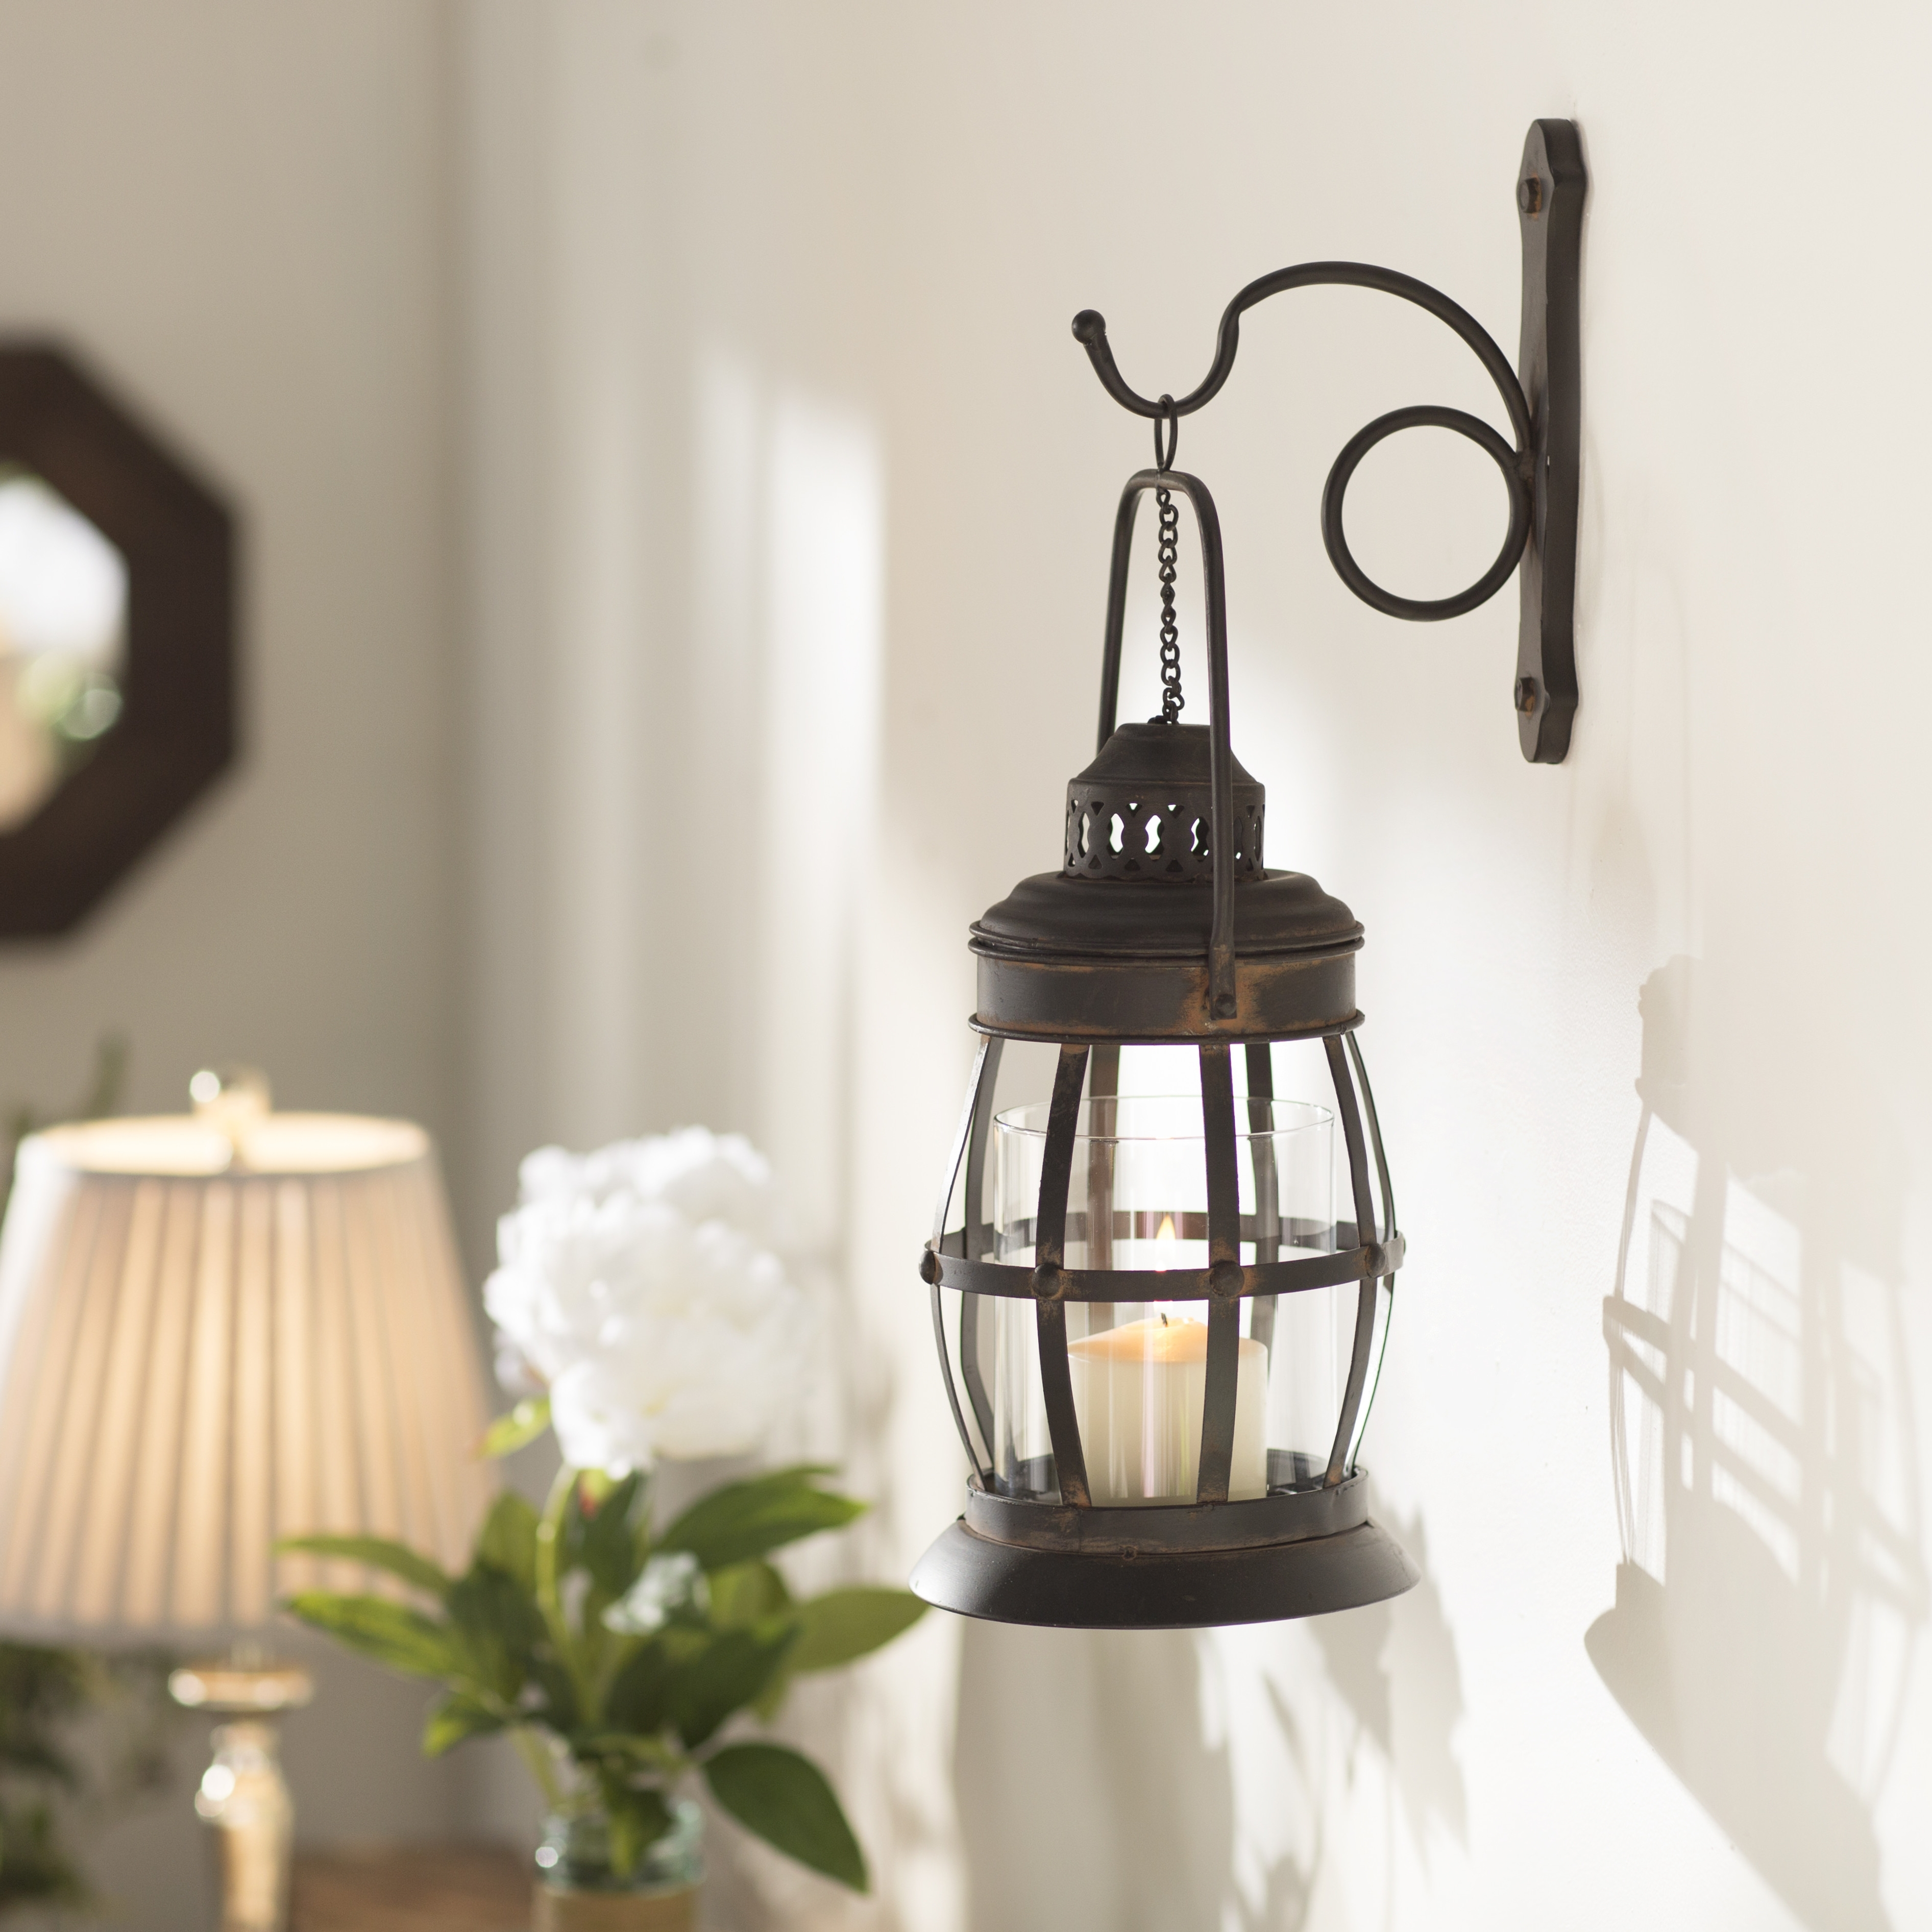 Lamps Plus Outdoor Ceiling Lights Inside 2019 Lamps Design : Lighting Superstore Lamps Plus Ceiling Fans Metal (View 6 of 20)